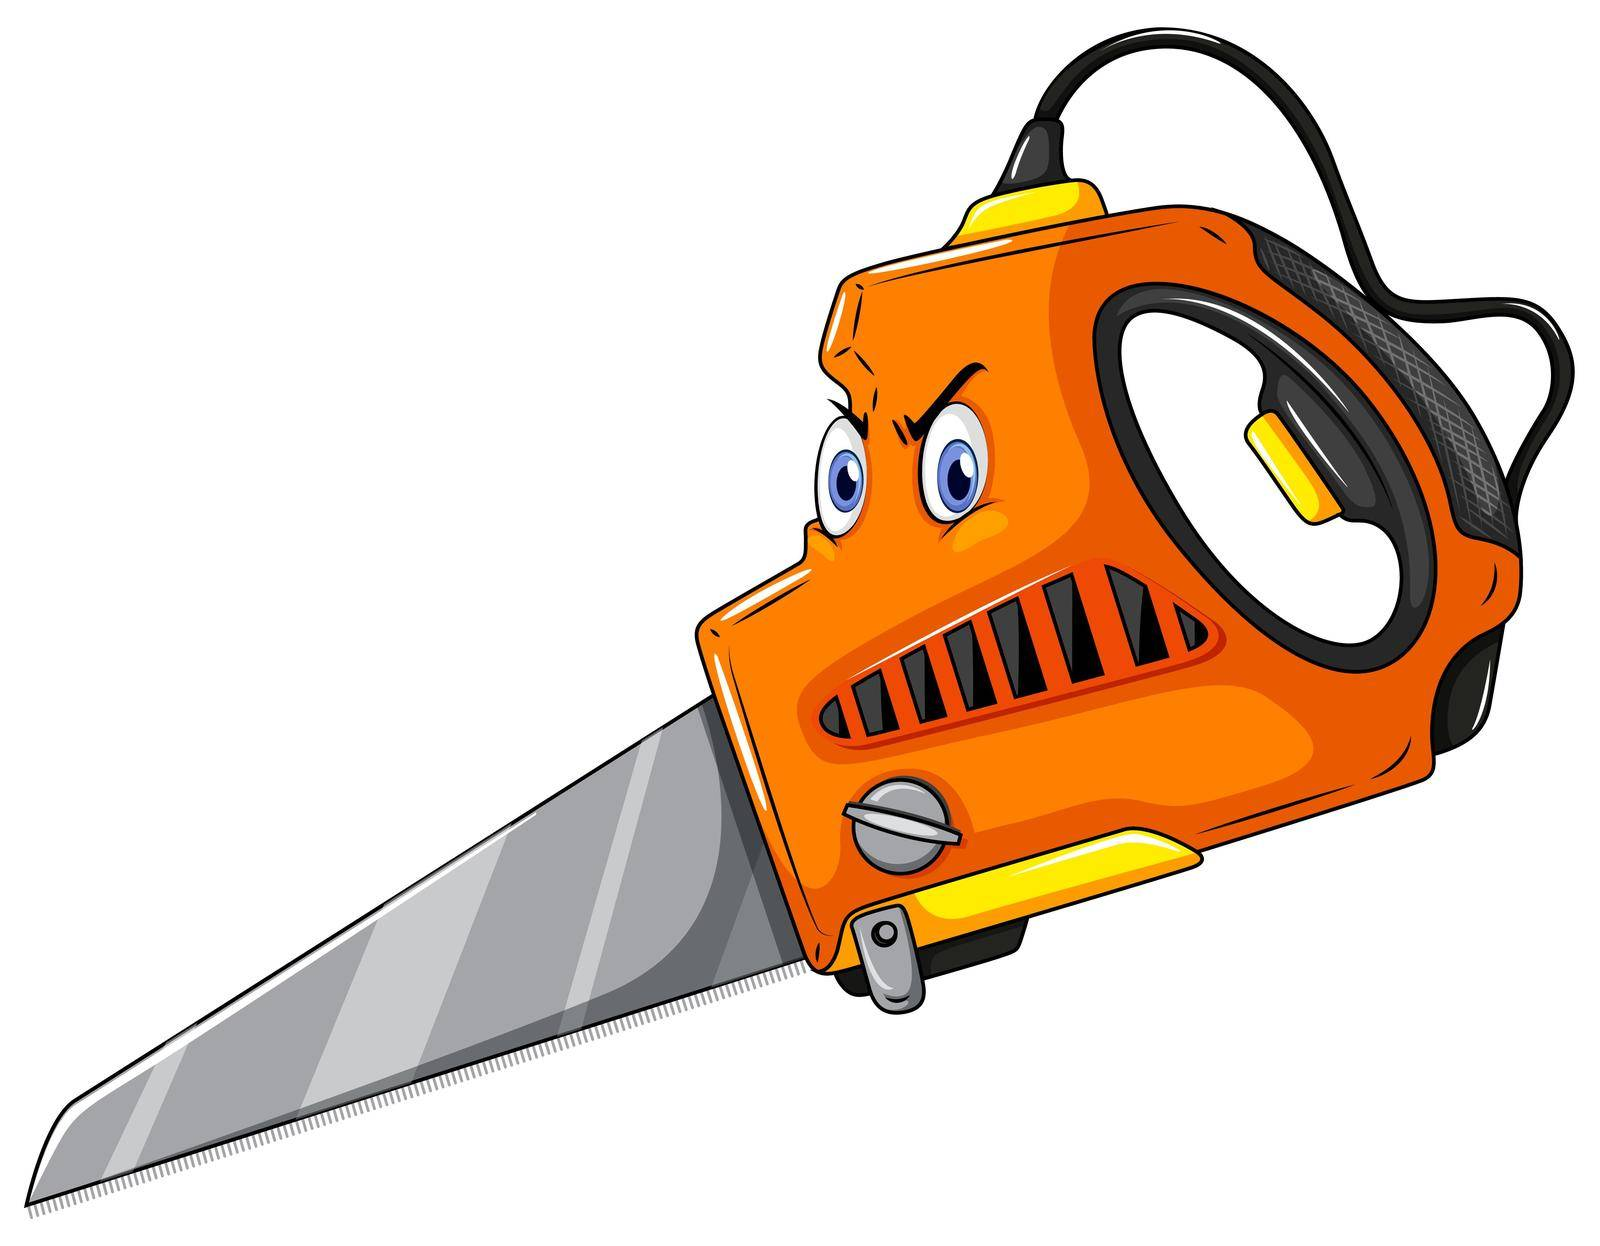 Furious looking saw on white background